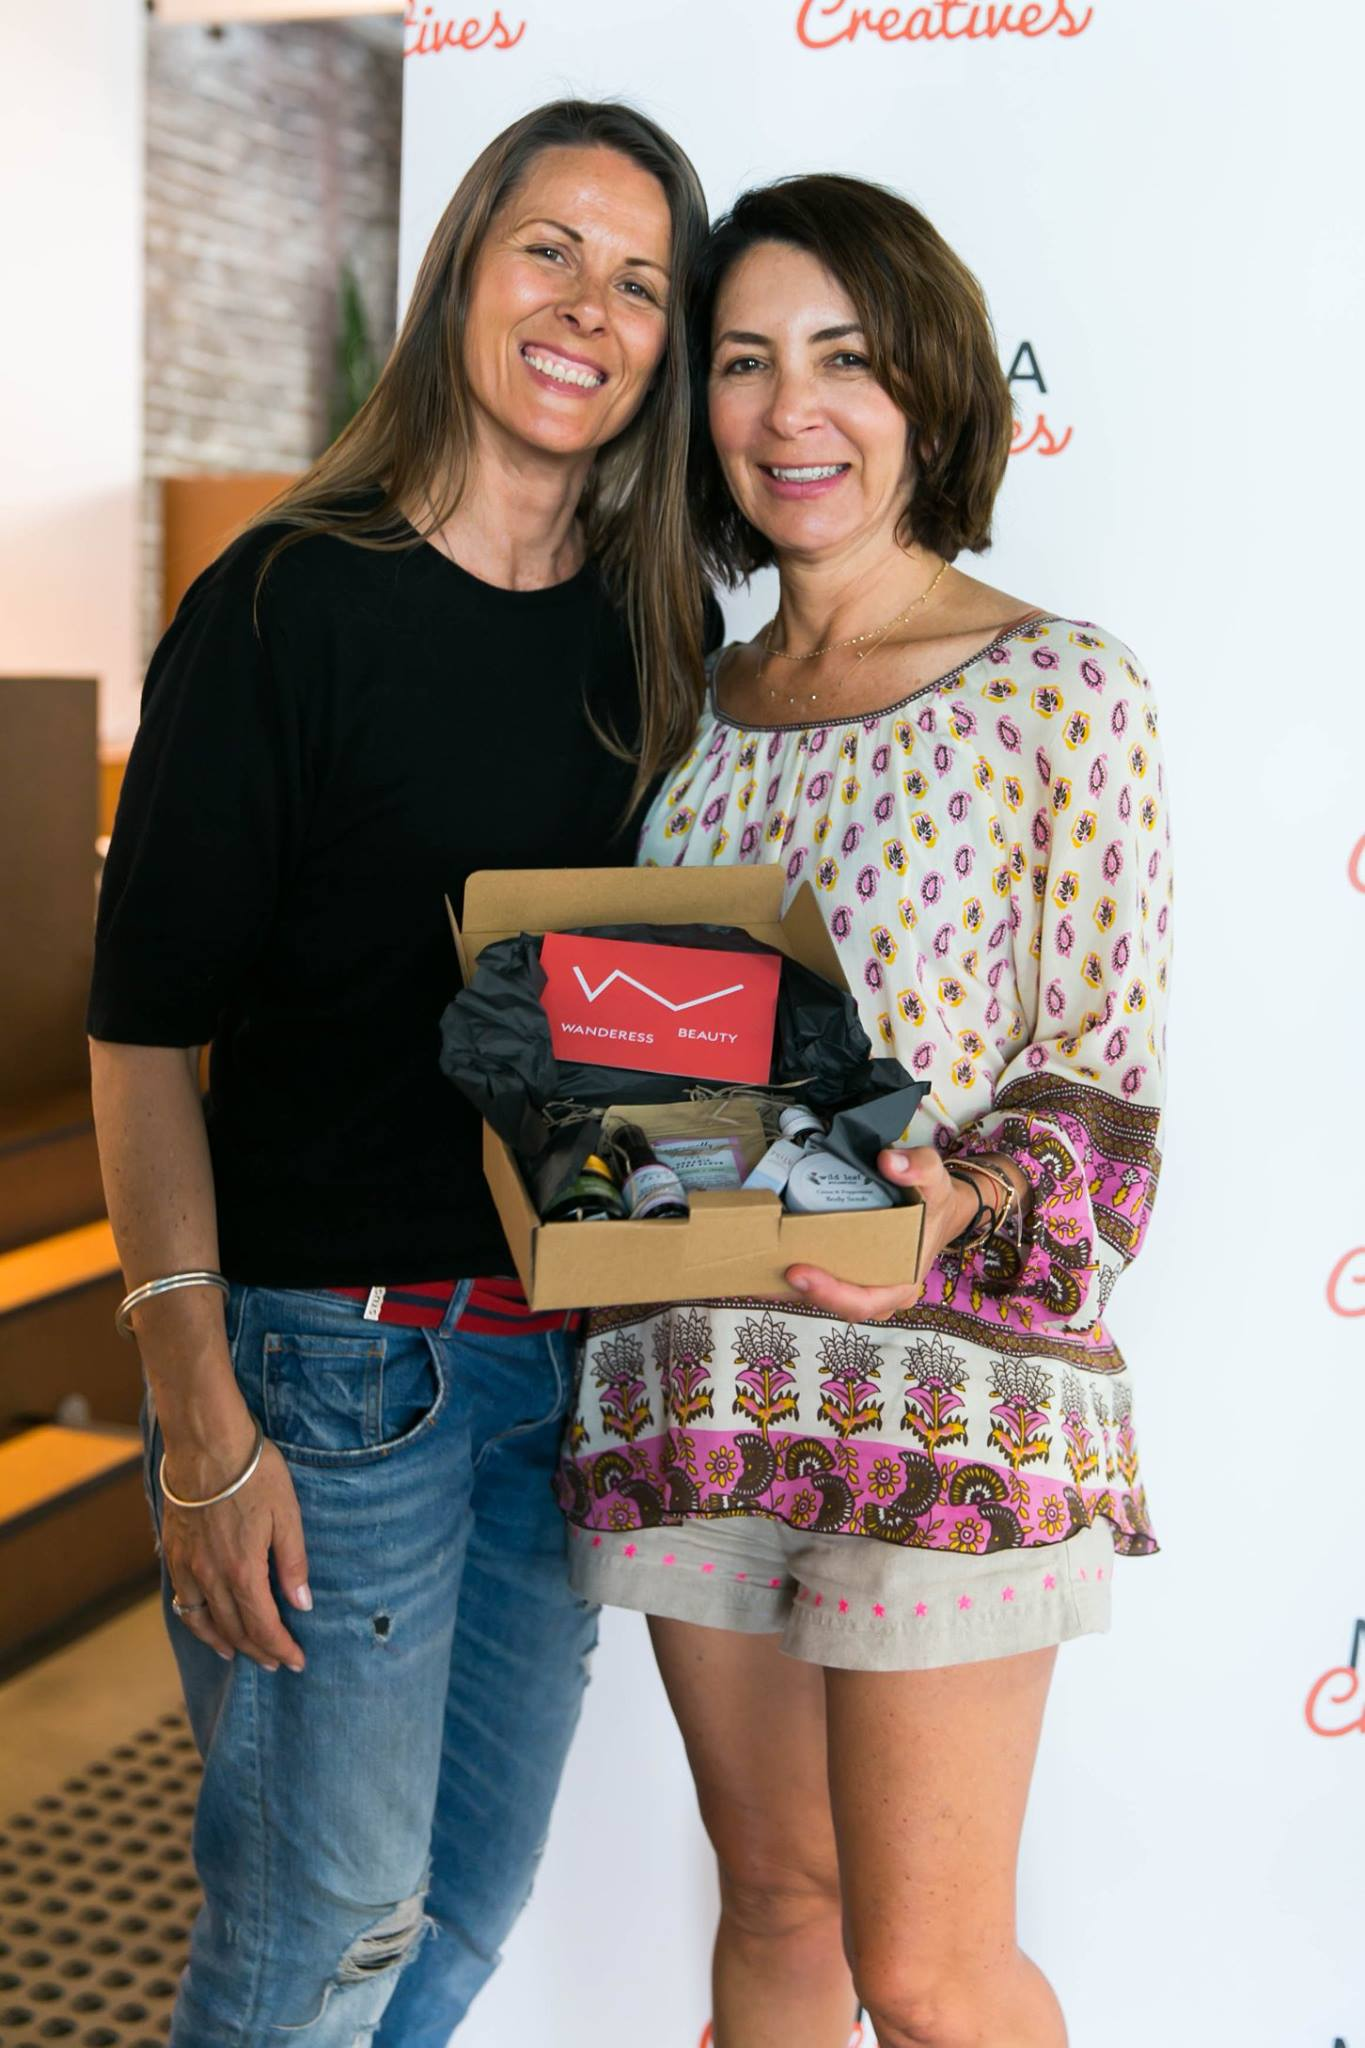 Congratulations to our lucky winner of the incredible Wanderess Beauty box, generously donated by the fabulous creative mamas who run this innovative green beauty brand. Check it out here:  https://www.wanderessbeauty.com/